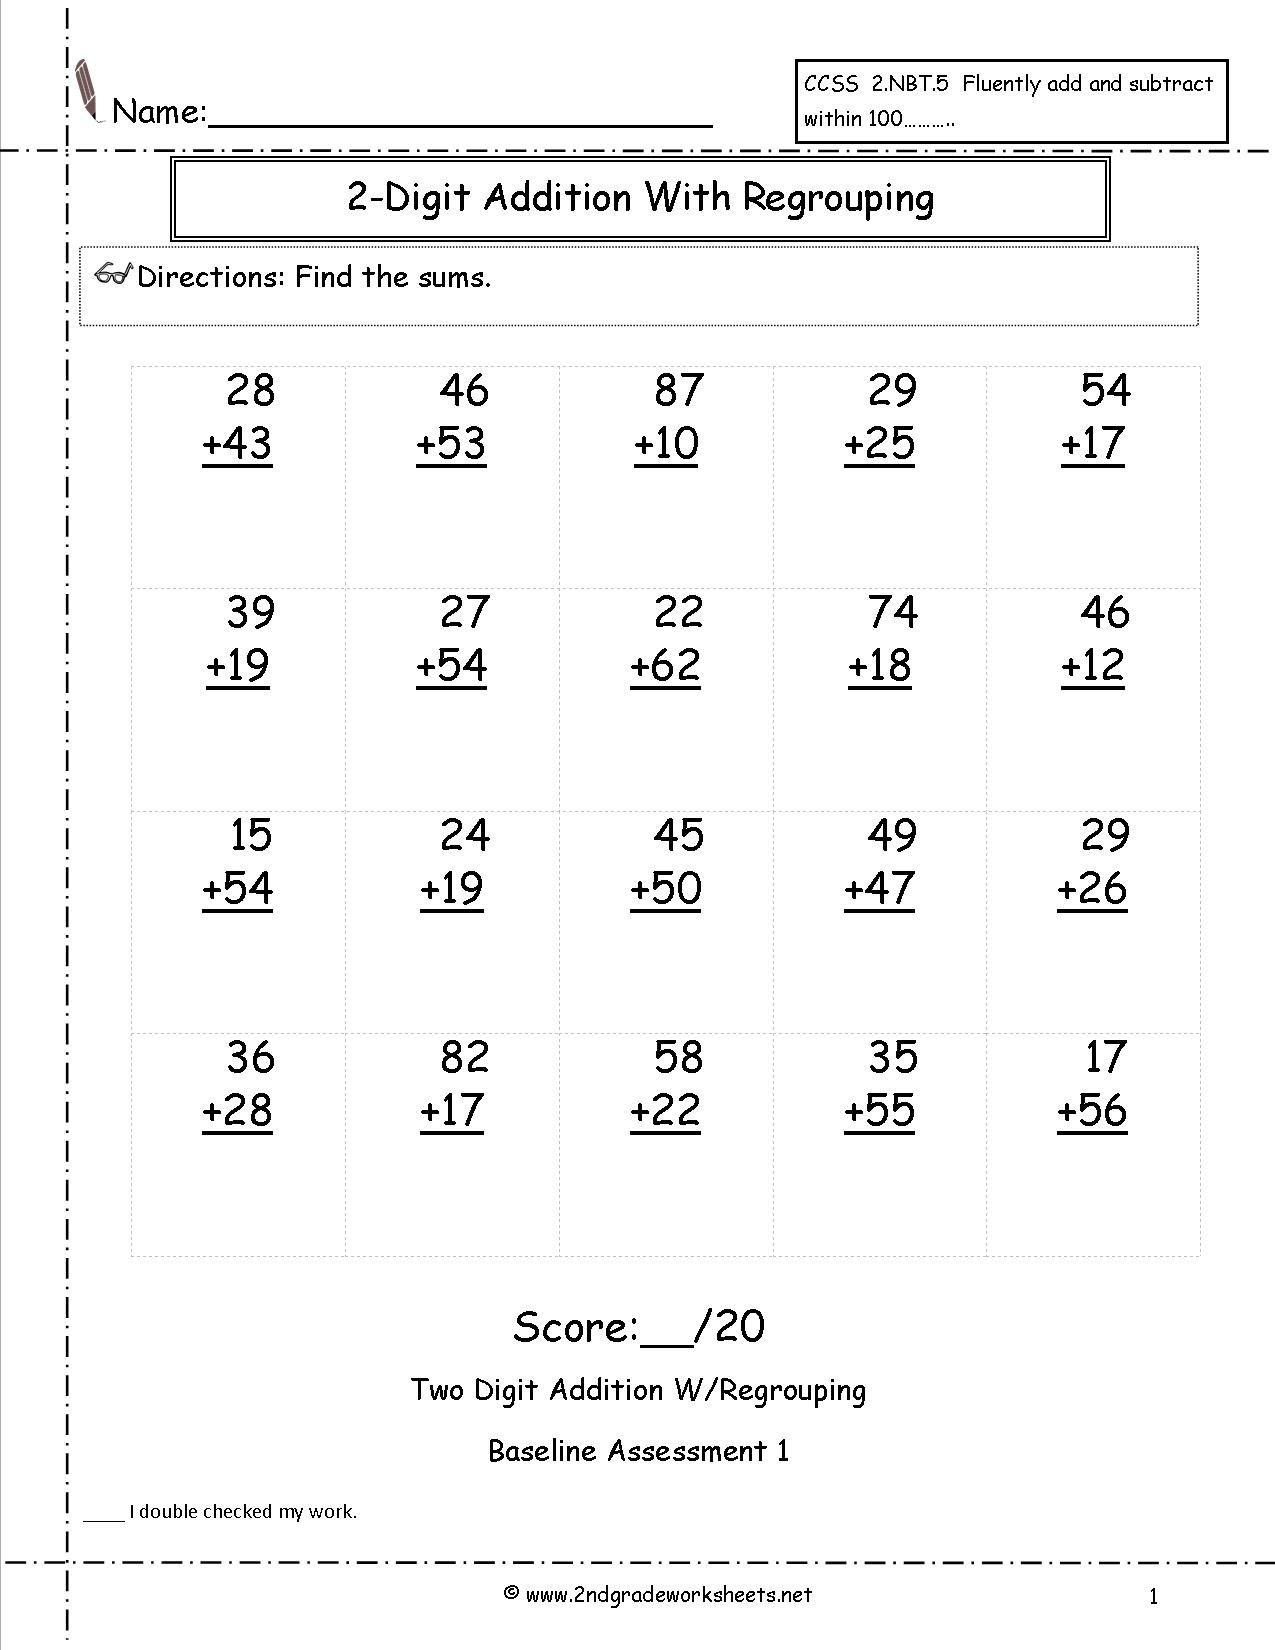 Two Digit Addition With Regrouping Assessment | Love To Learn - Free Printable Double Digit Addition And Subtraction Worksheets